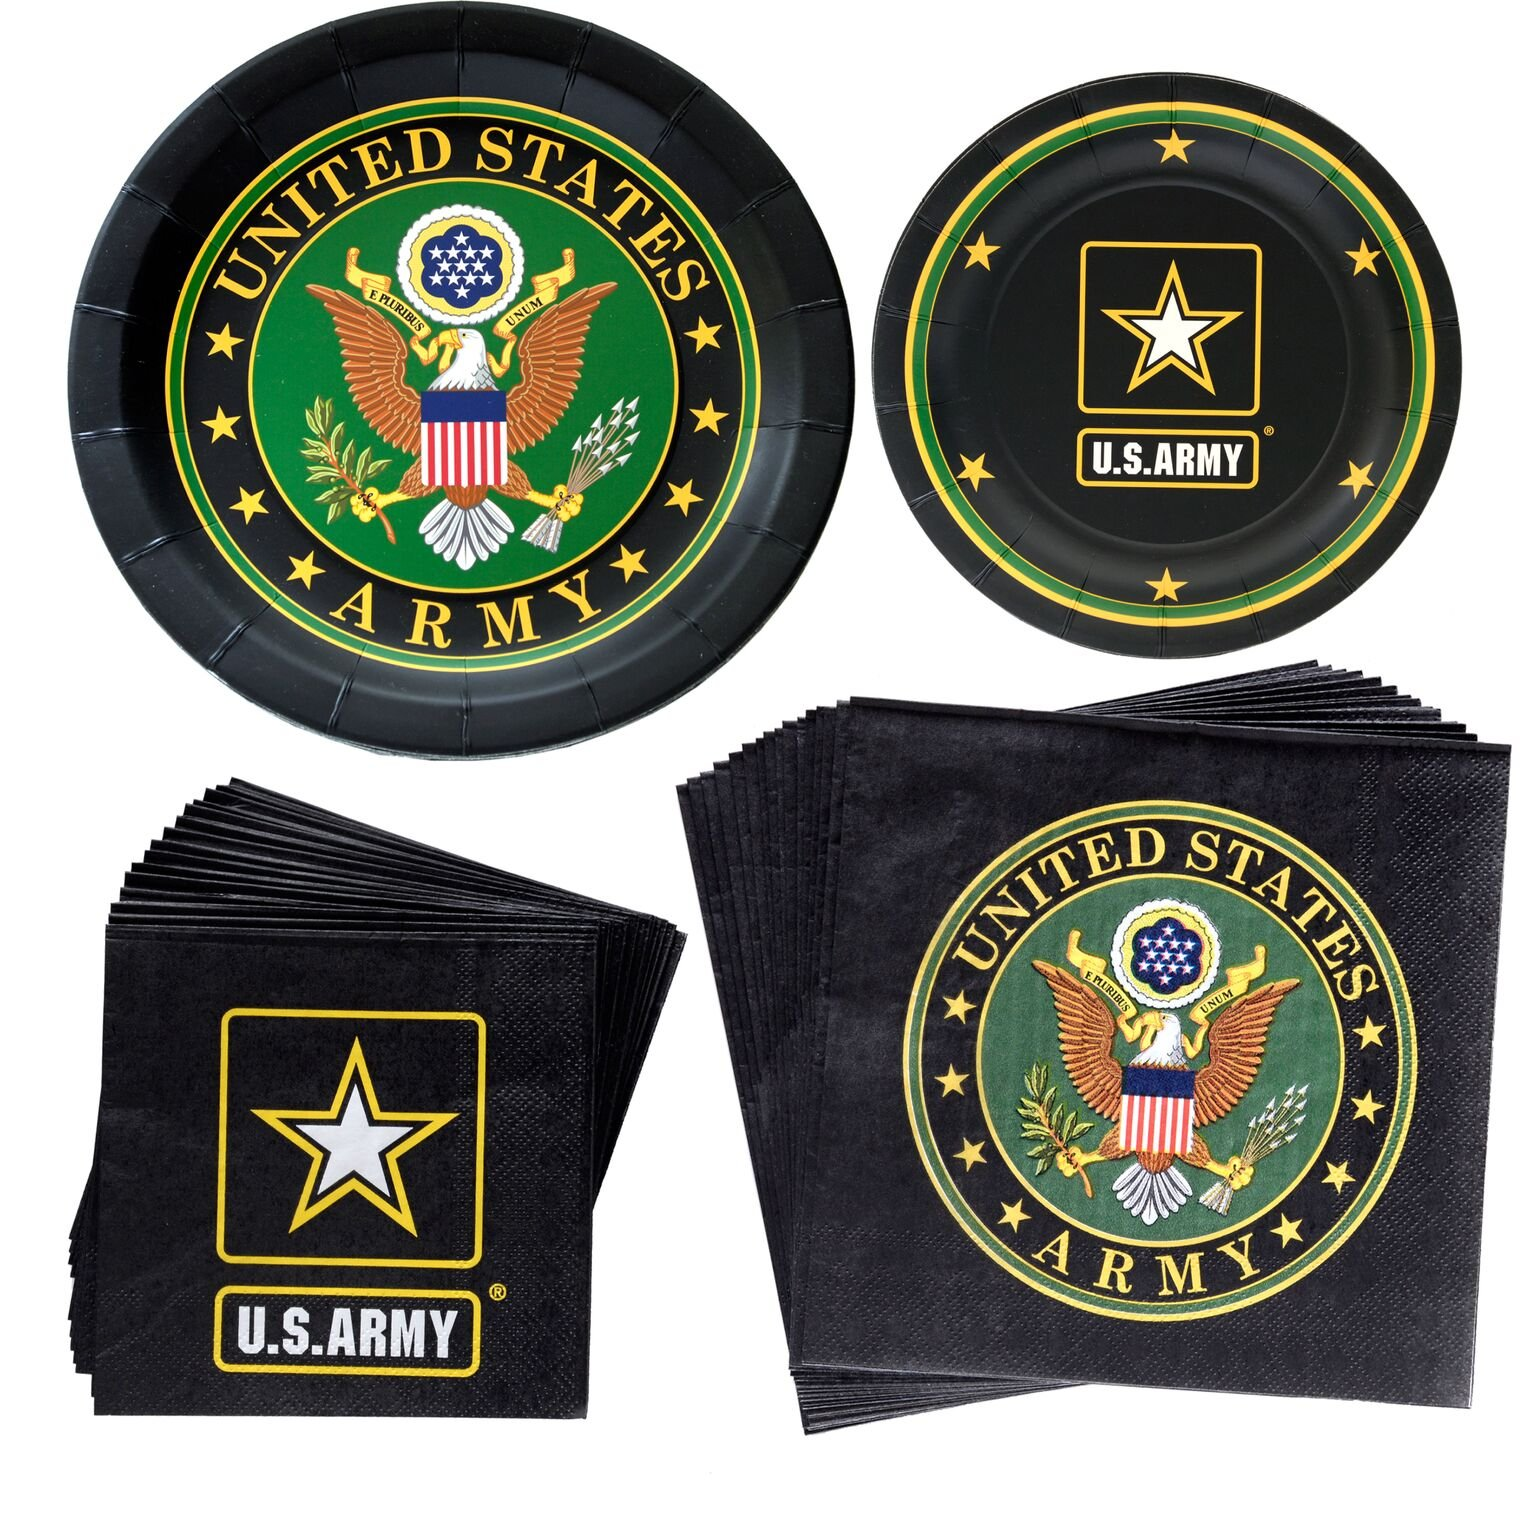 Army Party Supplies - Bundle Includes Officially Licensed U.S. Army Paper Plates and Napkins for 8 Guests